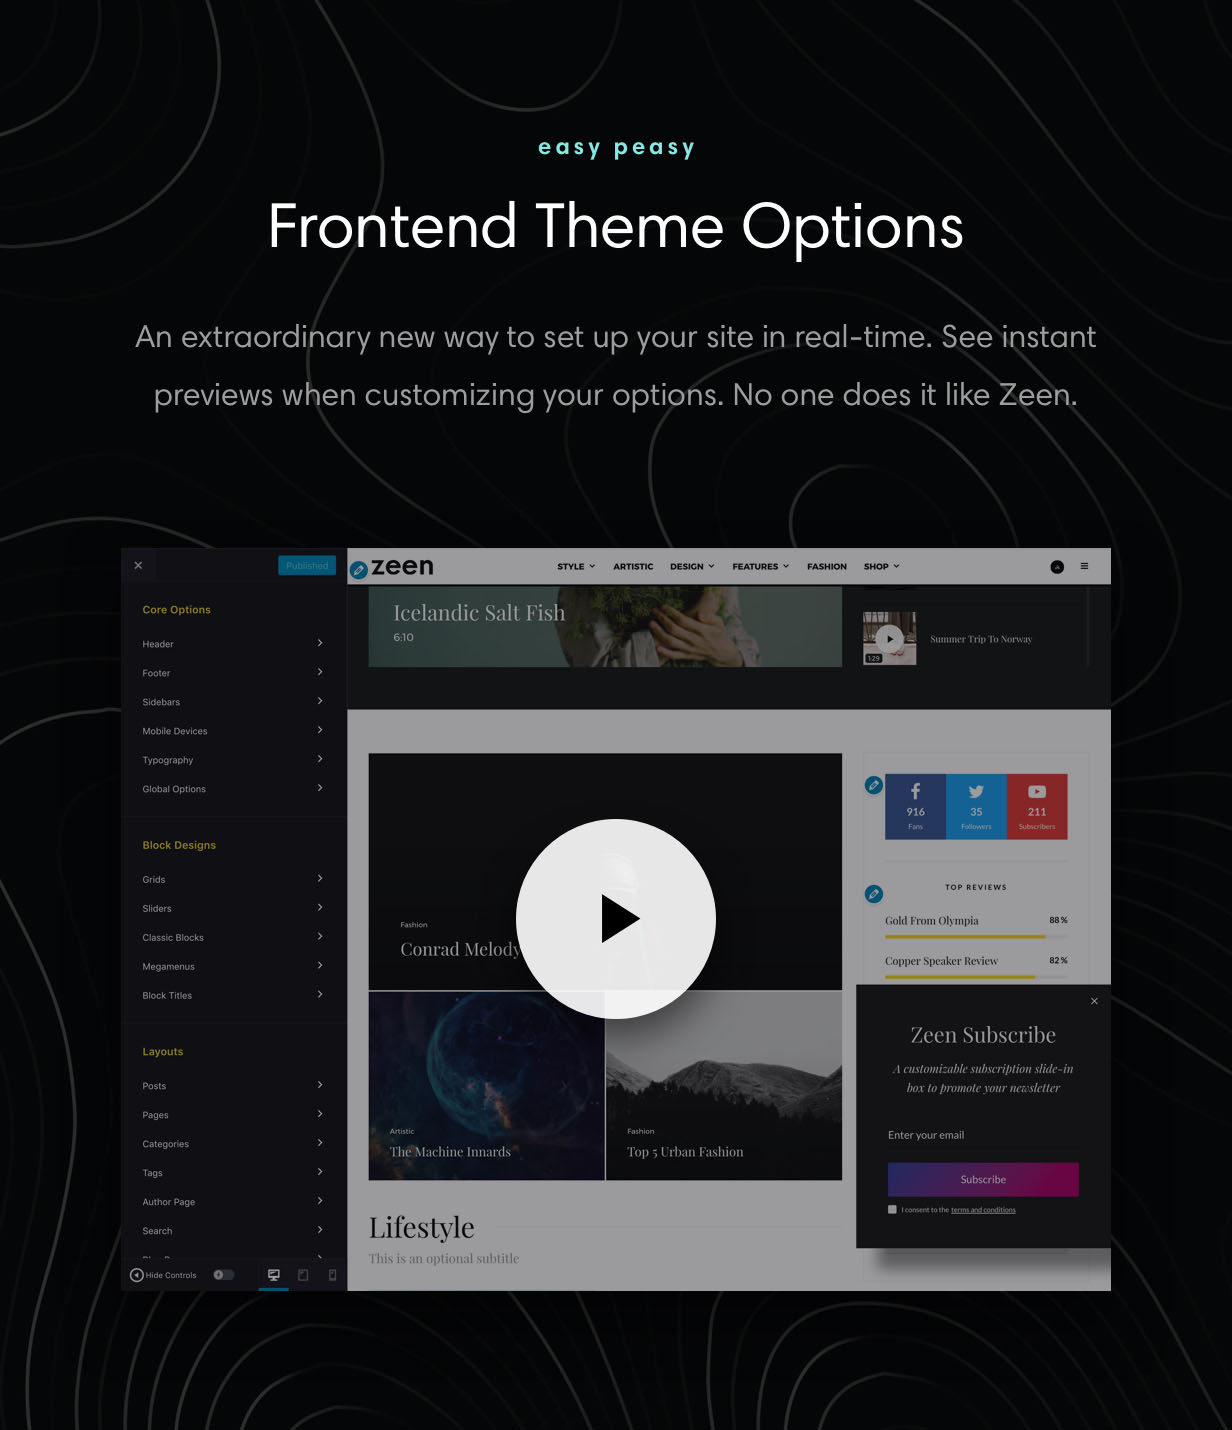 Zeen Theme Options are 100% frontend